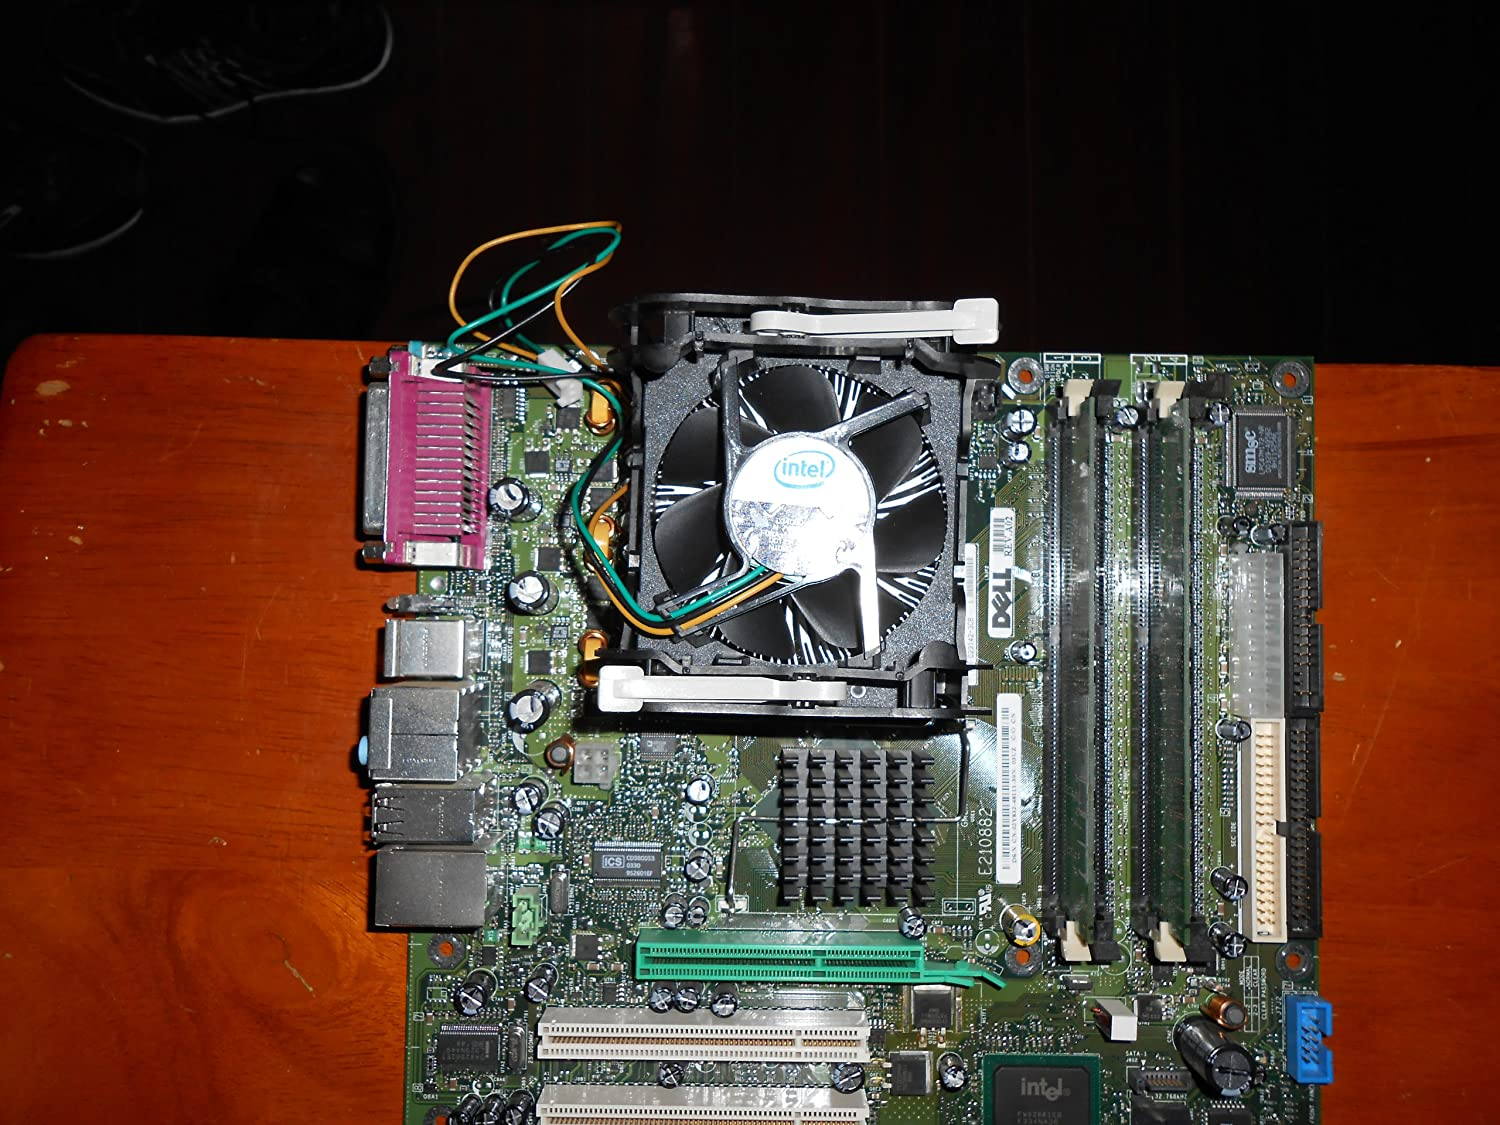 Genuine Dell F4491 Main System Motherboard with Video for Dimension 4600 Systems Dell Part Numbers: N2828, E210882